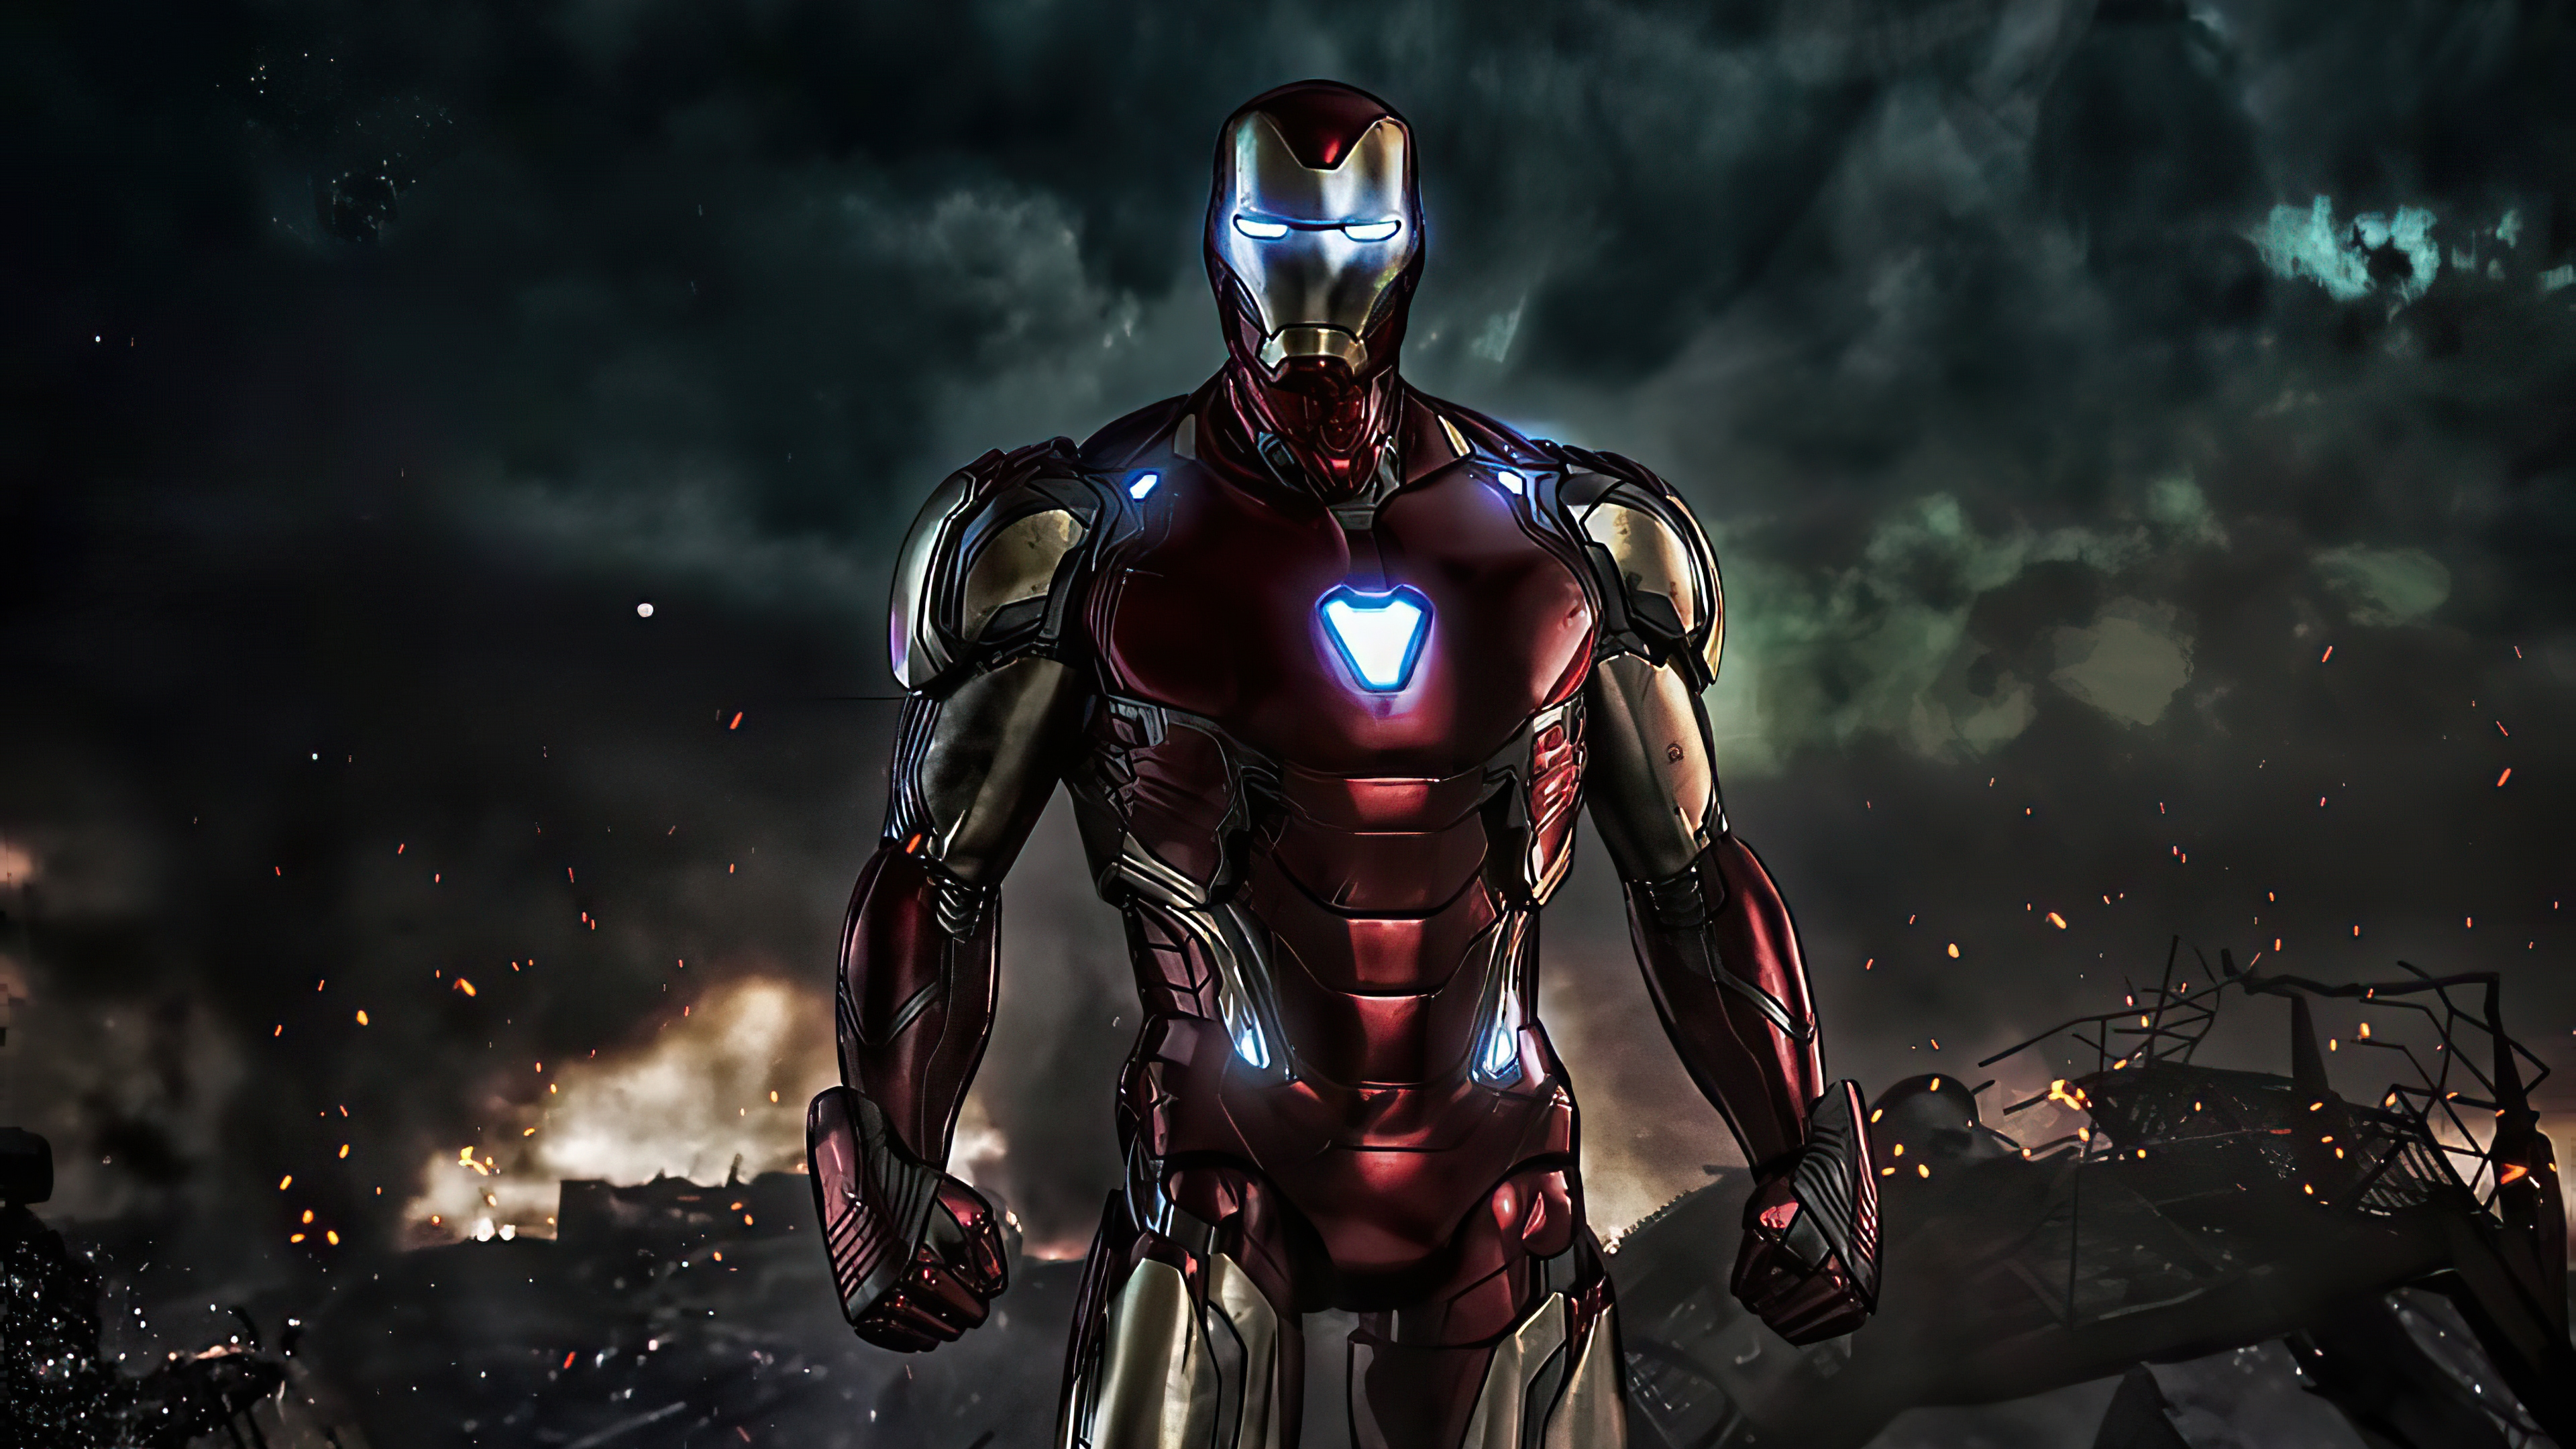 1 Iron Man Endgame Hd Wallpapers Backgrounds